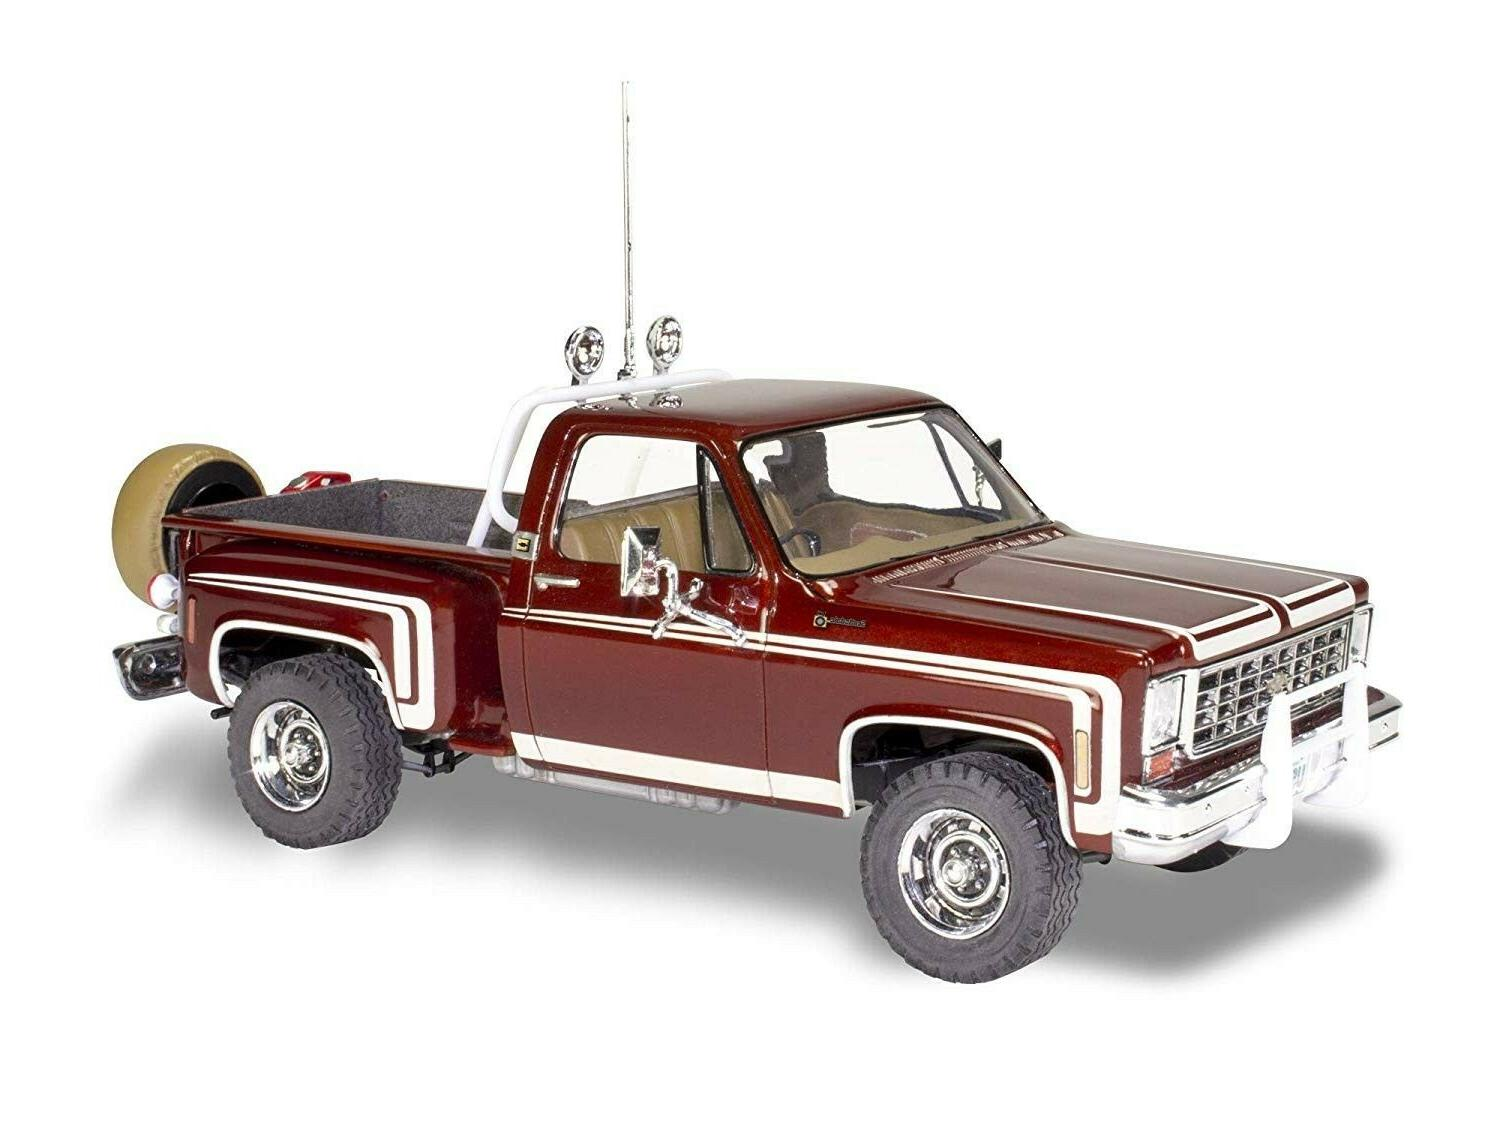 Revell 1976 Chevy Stepside Pickup scale model